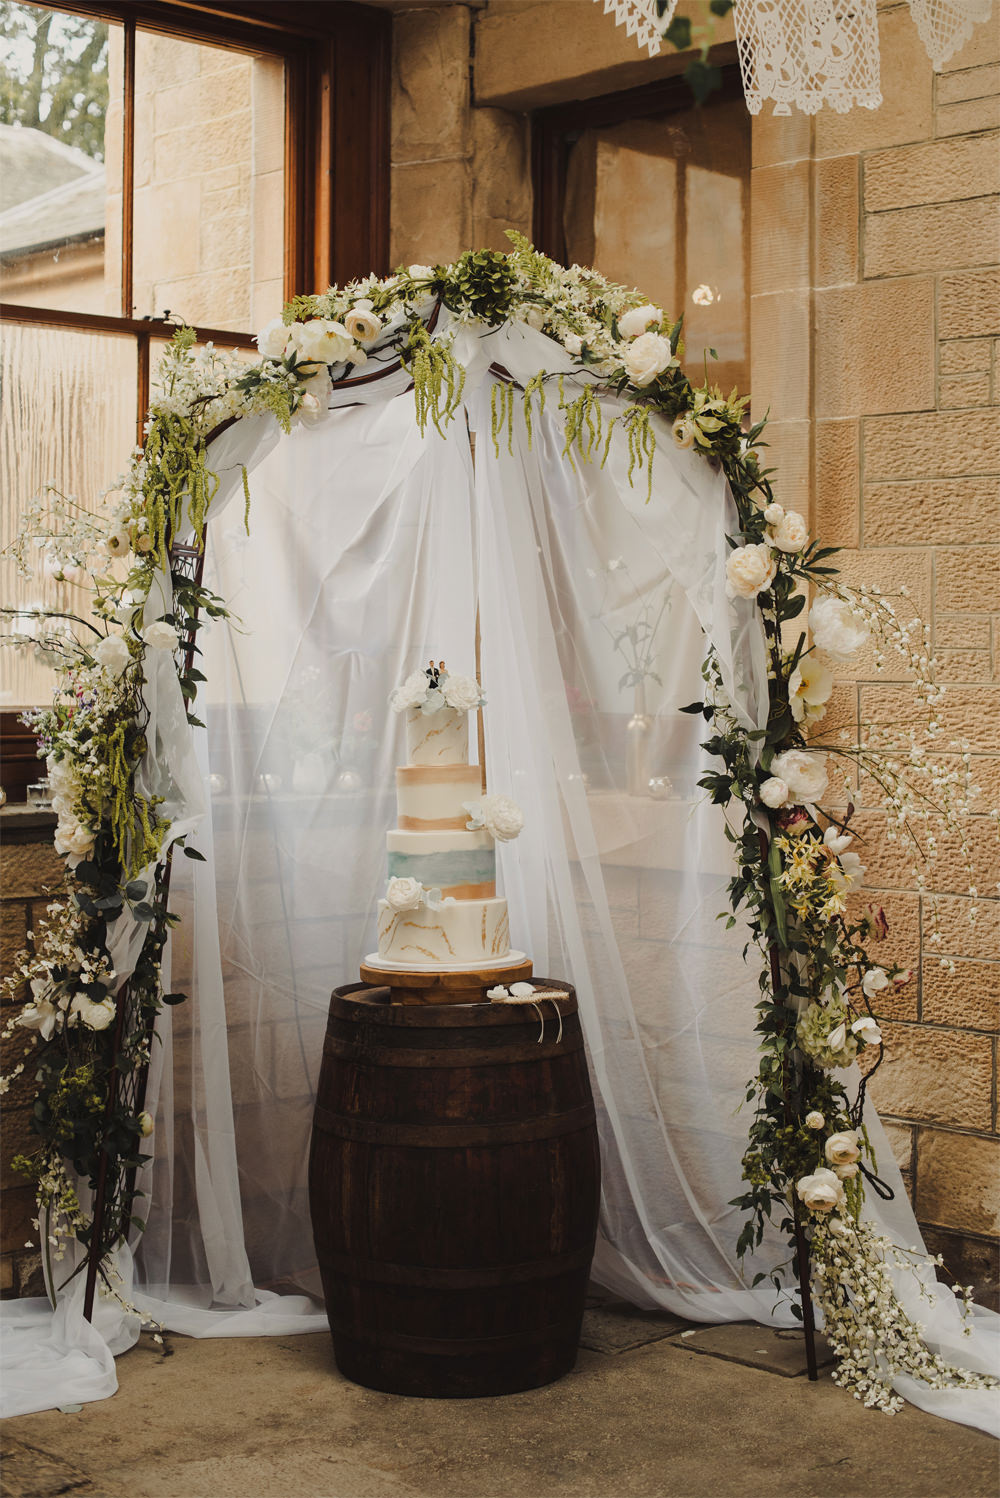 Flower Arch Greenery Foliage Fabric Cake Table Cambo Estate Wedding Anna Urban Wedding Photography